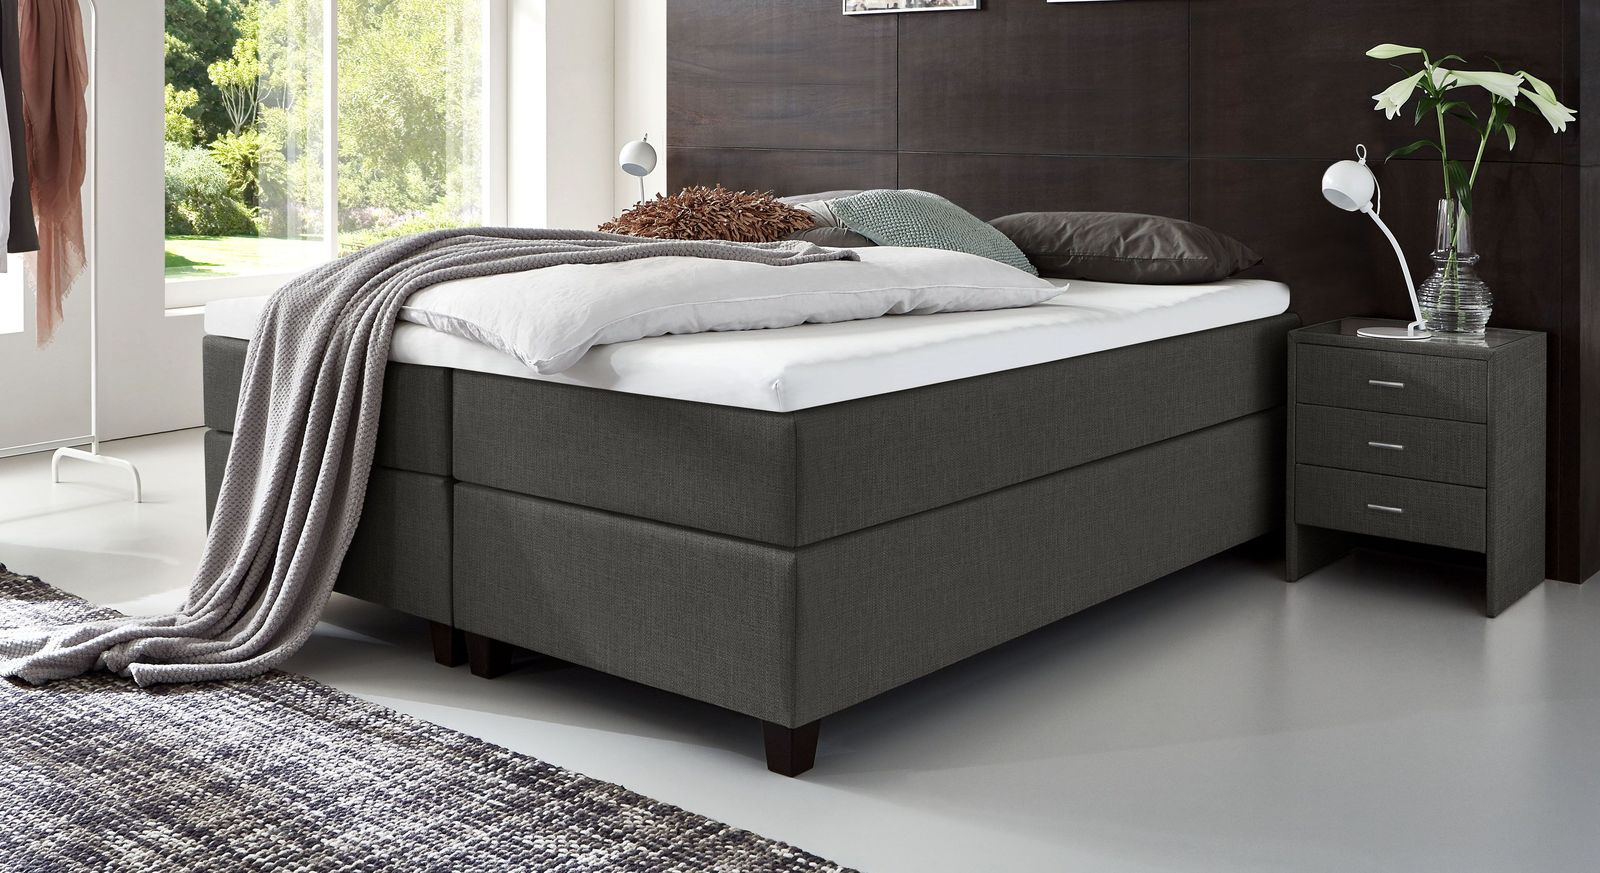 66 cm hohe Boxspringliege Luciano aus meliertem Webstoff in Anthrazit